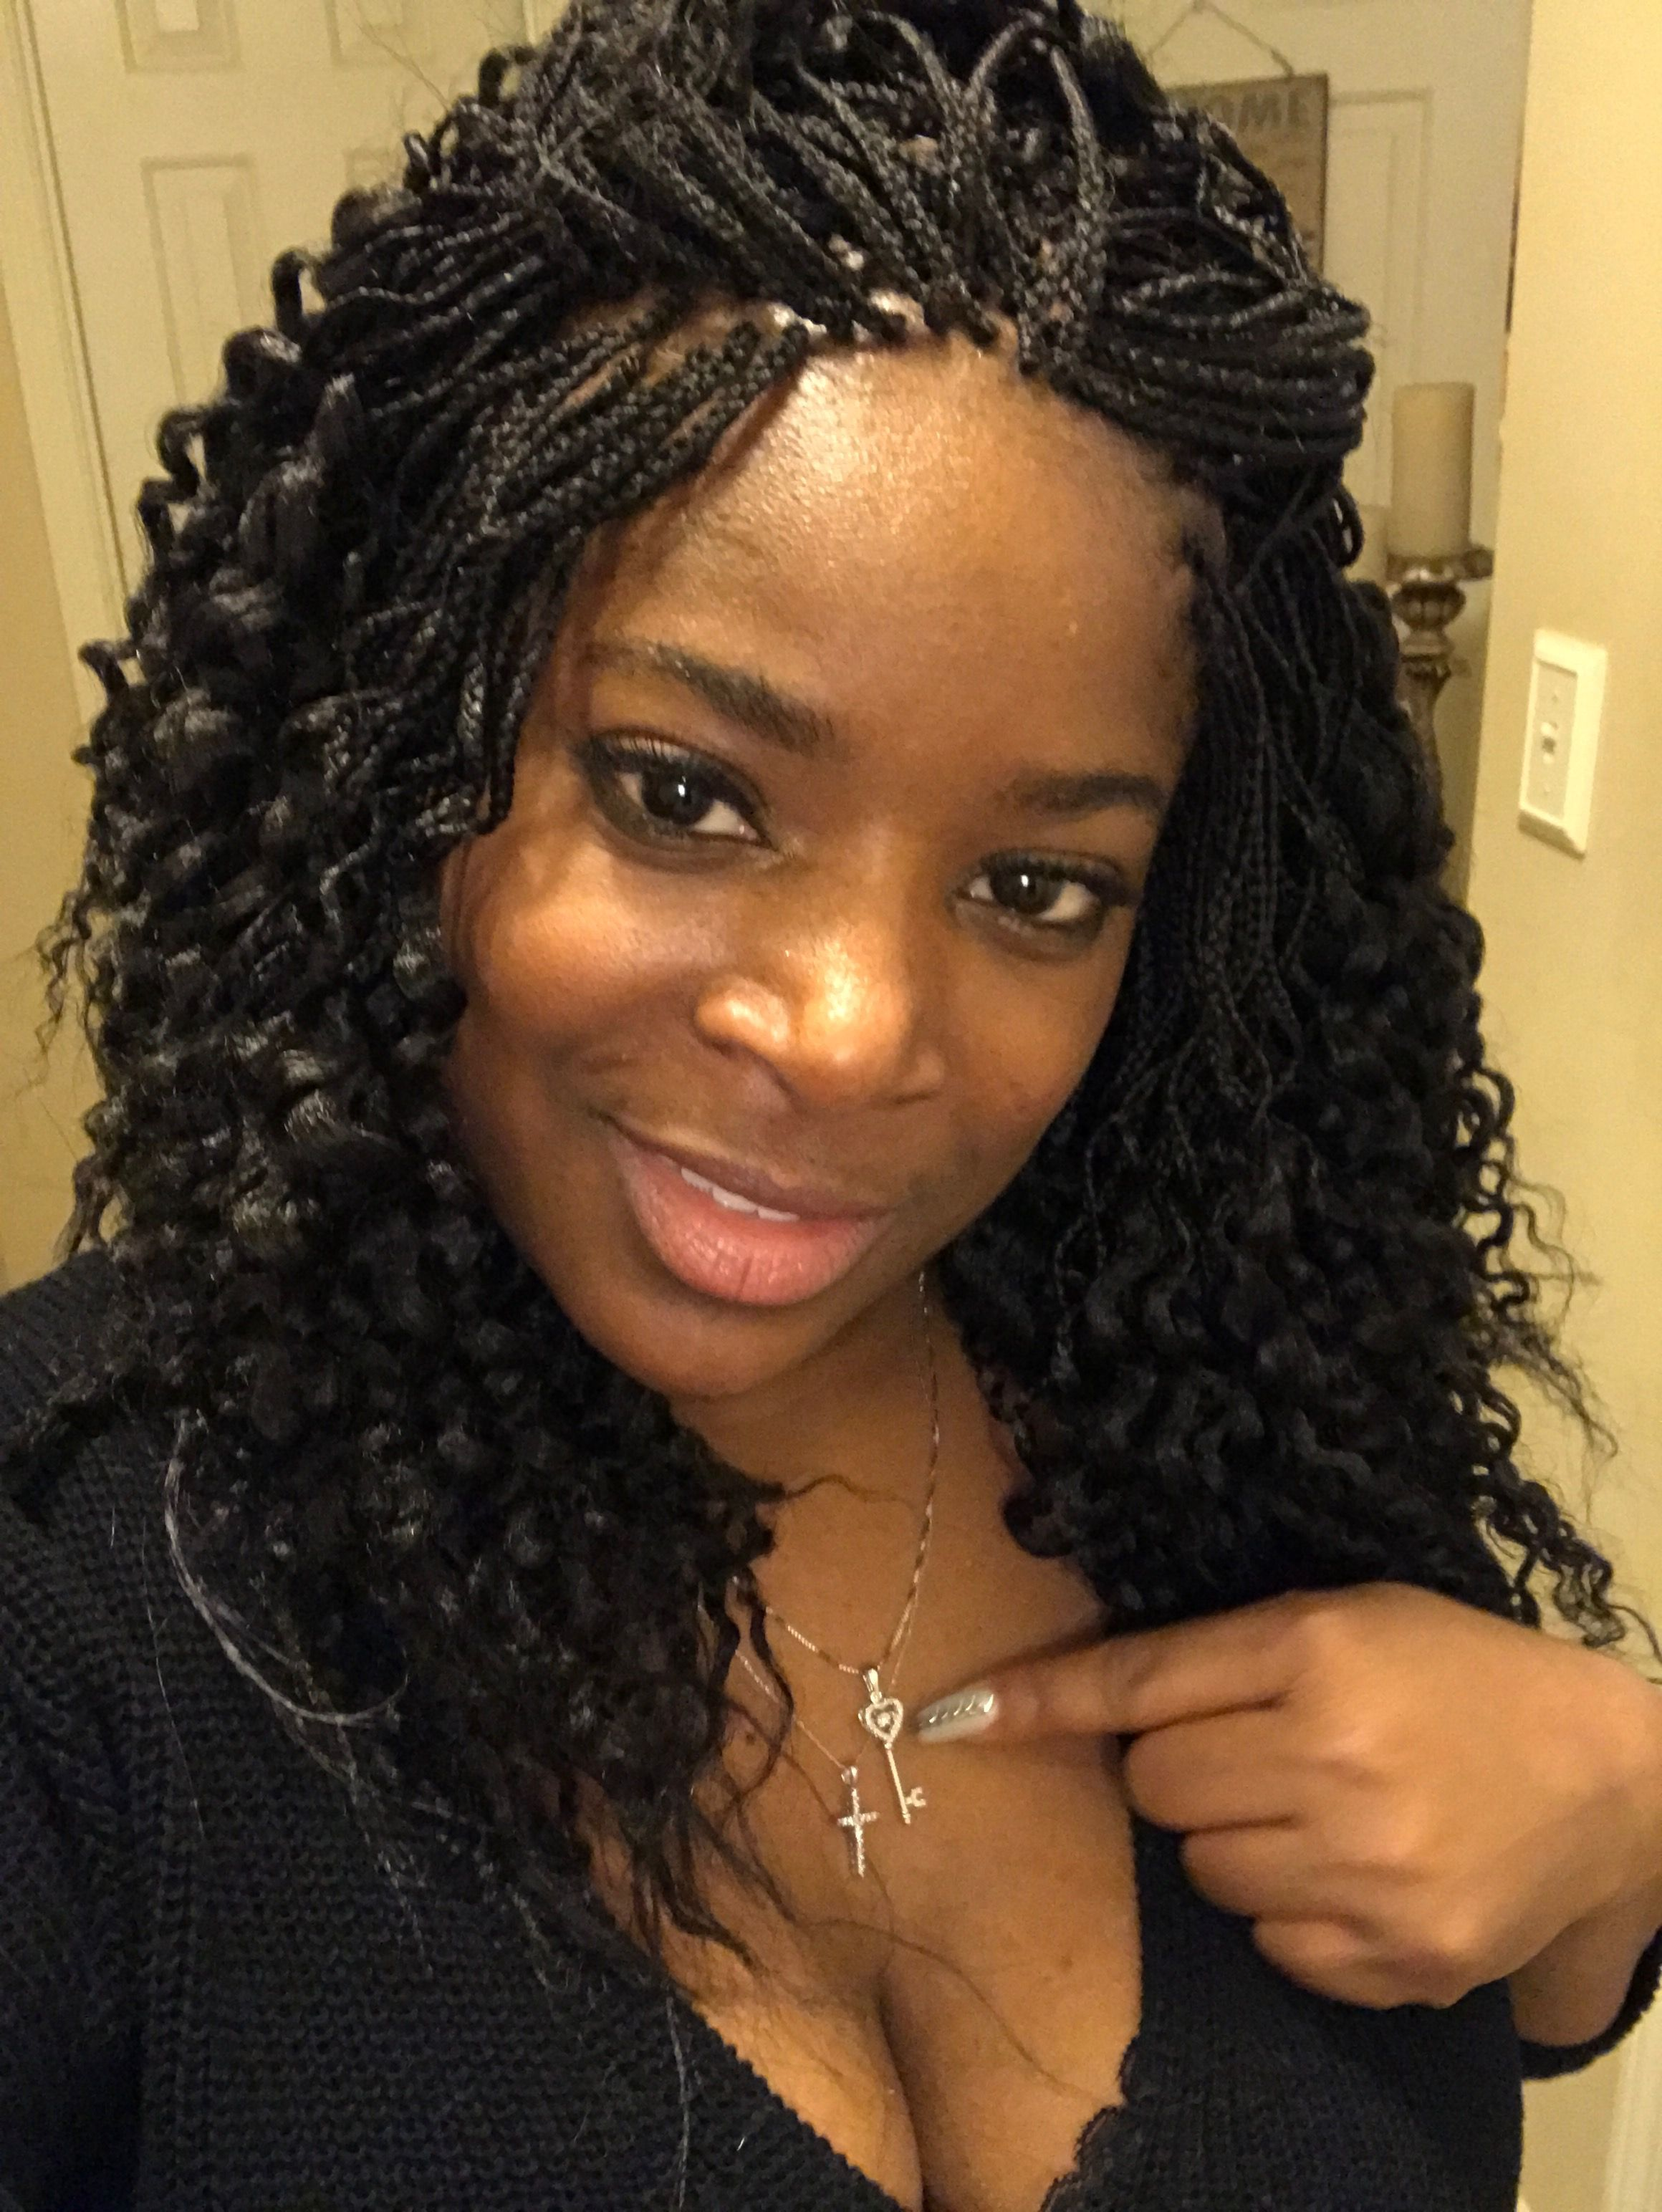 Expression Hair Micros Not By Me Braids For Black Hair Micro Braids Styles Box Braids Hairstyles For Black Women